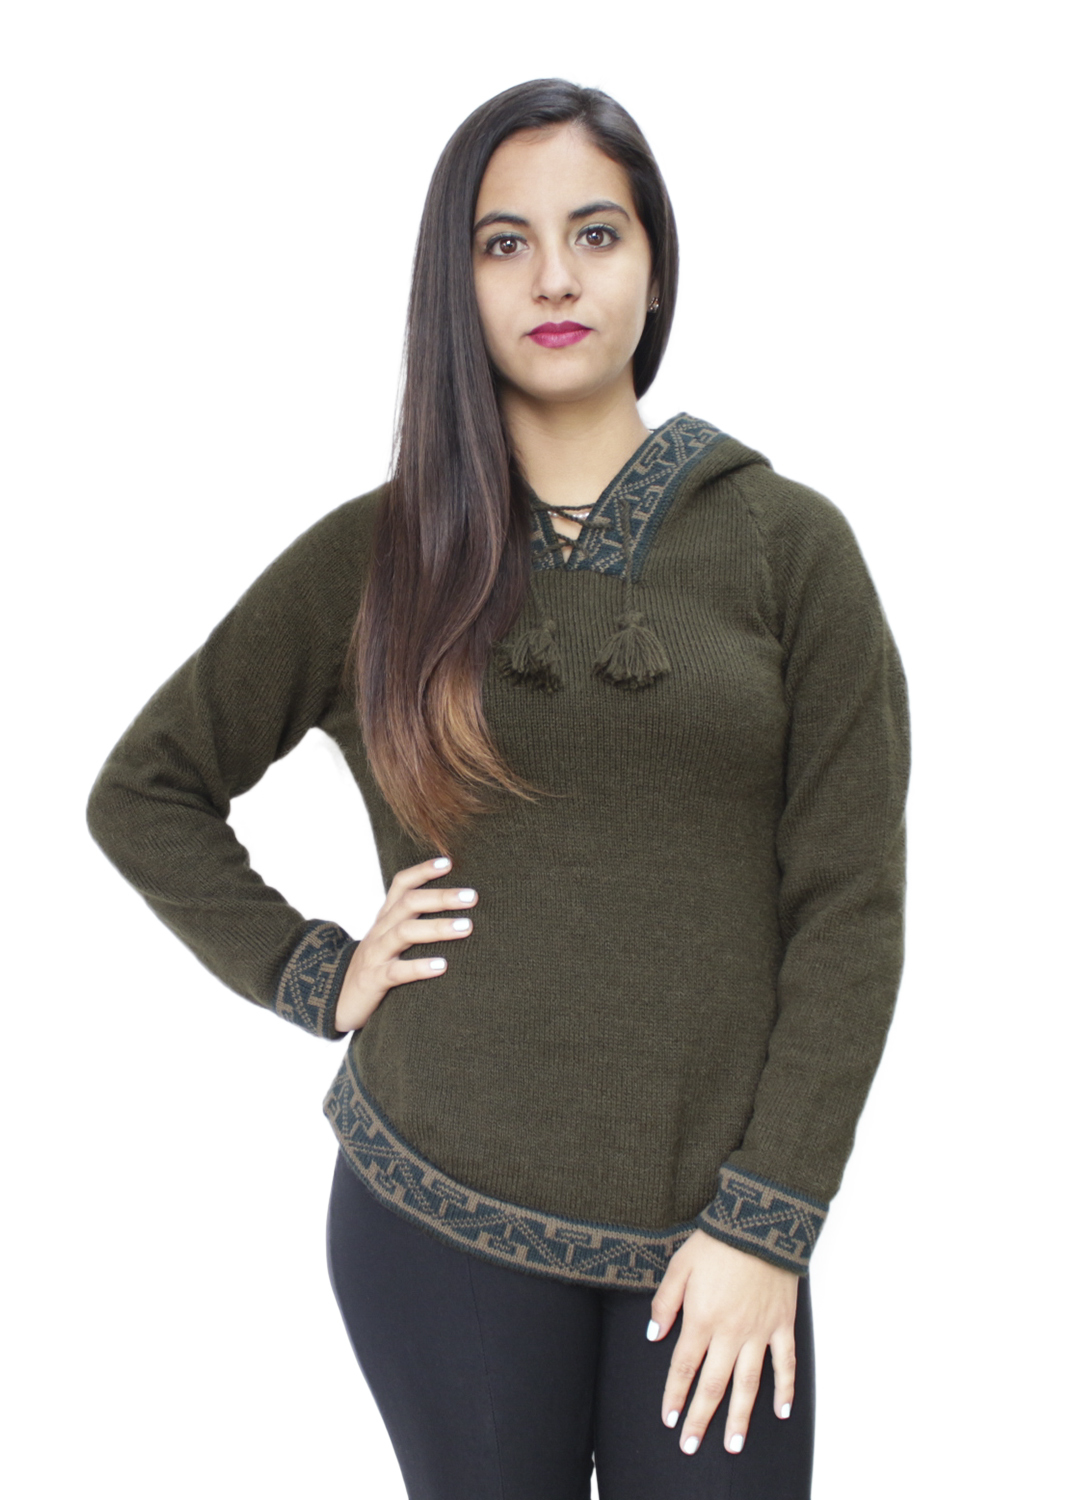 Shop Cabela's assortment of Women's Sweaters, including traditional and modern styles of pullovers, cardigans, cowl neck sweaters and more.